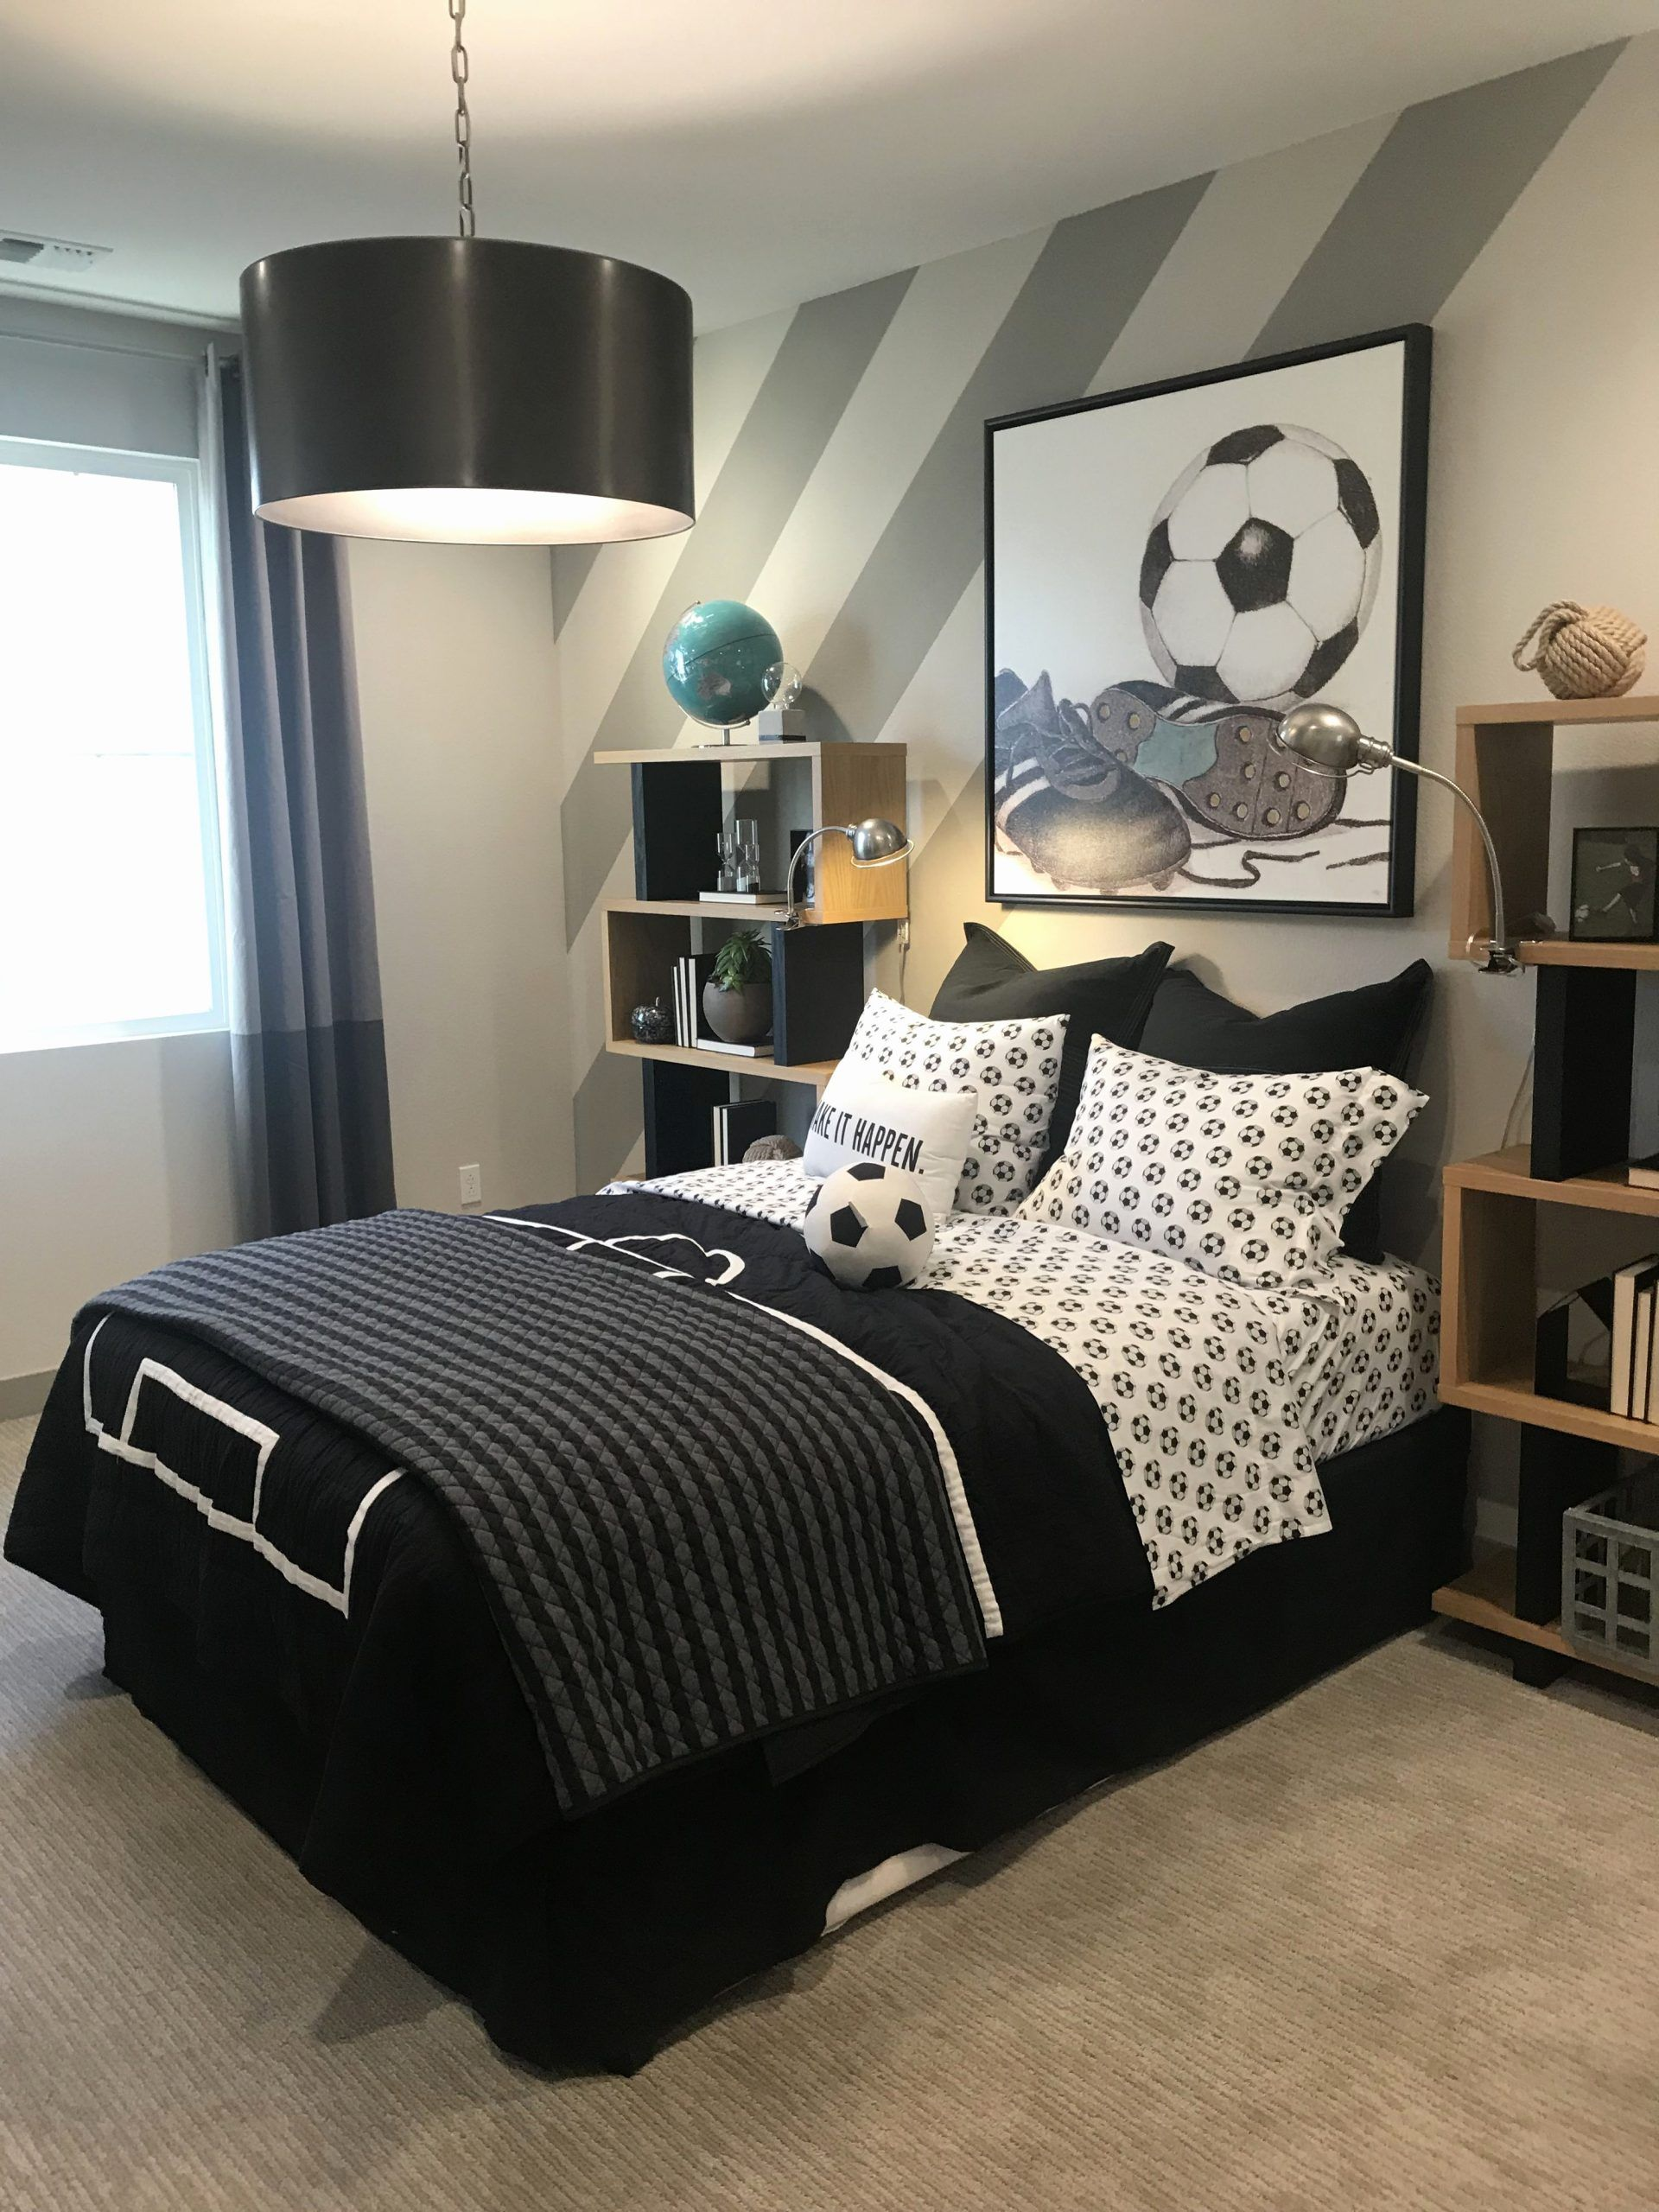 Mens Bedroom Ideas On A Budget Inspirational 10 Awesome Small Bedroom Ideas To Optimize Your Tiny In 2020 Boy Bedroom Design Boys Bedroom Decor Cool Bedrooms For Boys